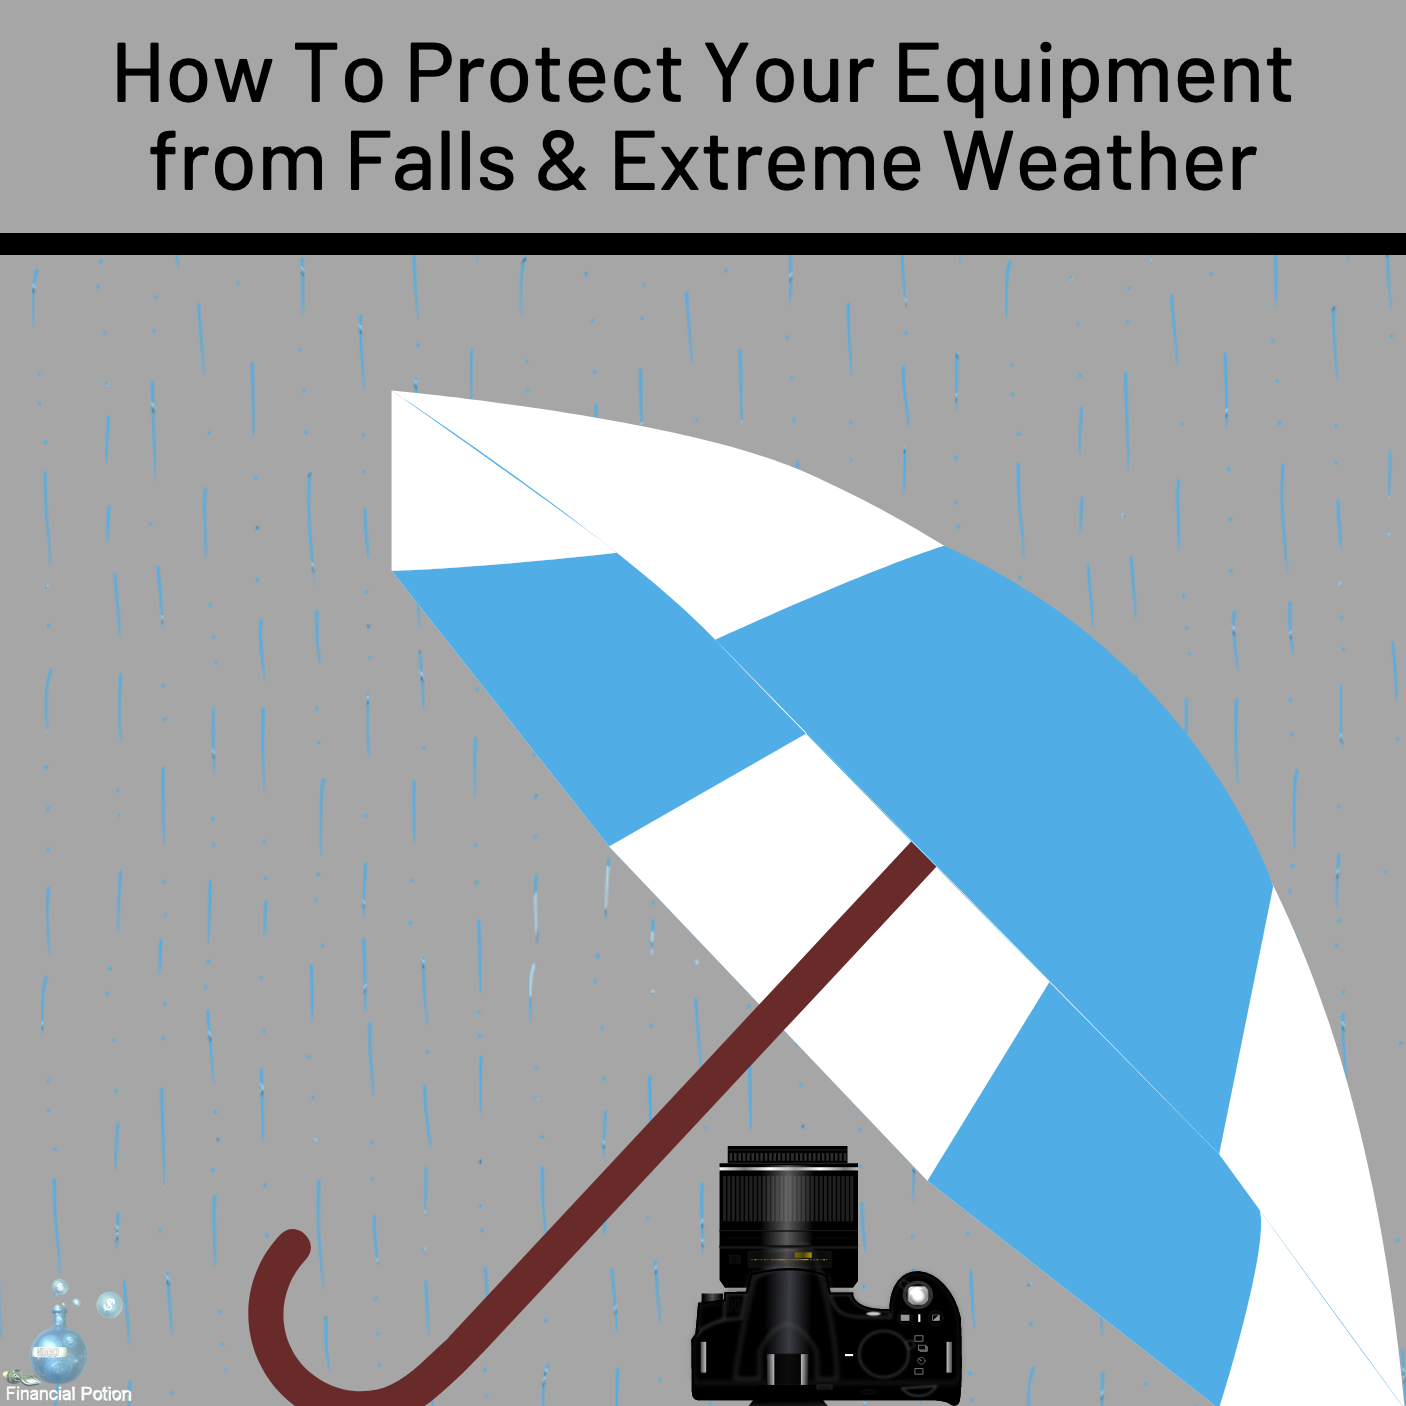 How to, Protect Equipment, Extreme Weather